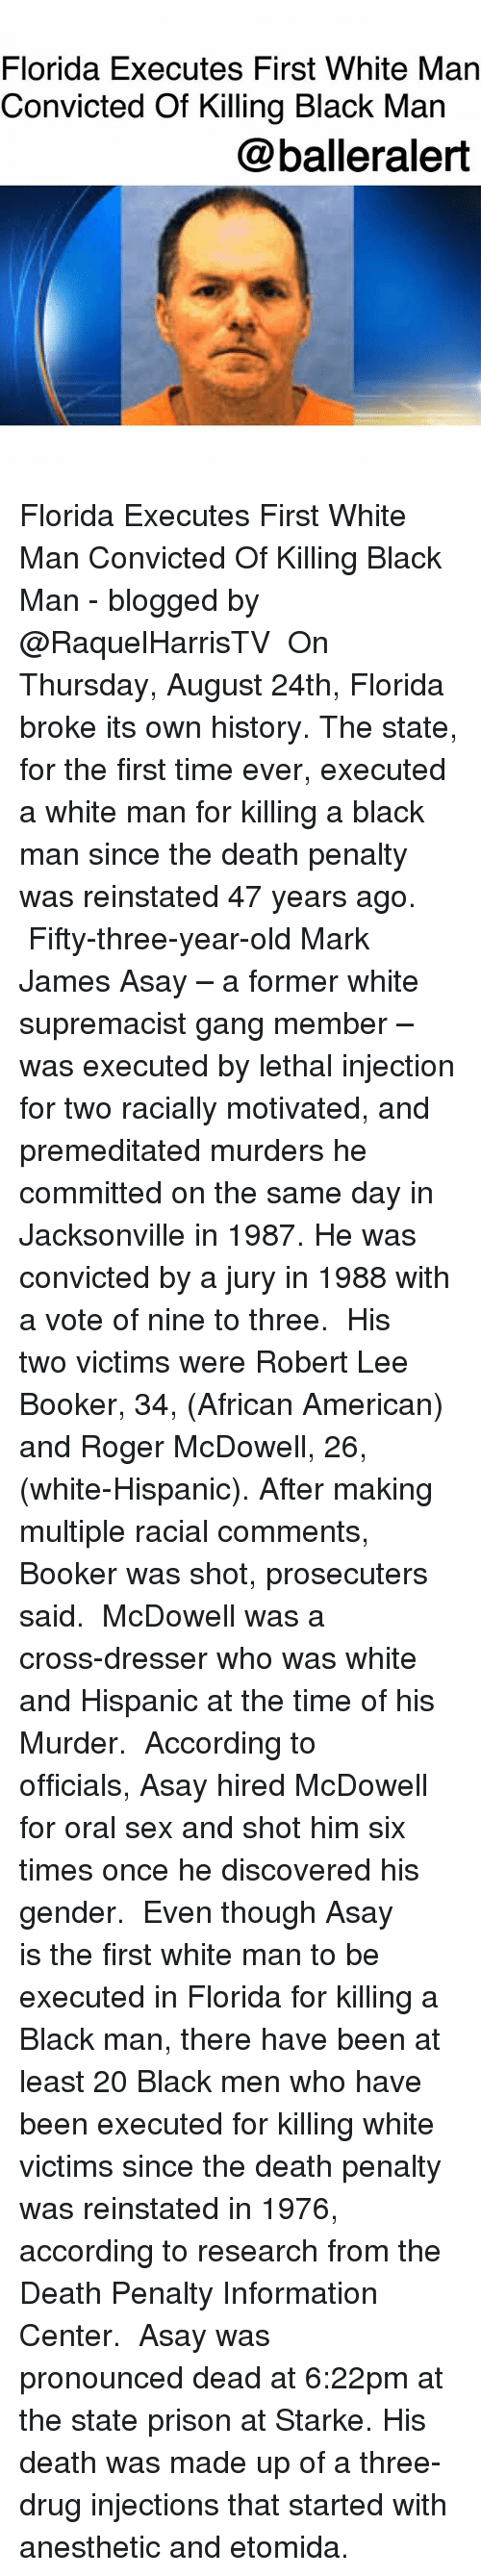 Rogered: Florida Executes First White Man  Convicted Of Killing Black Man  @balleralert Florida Executes First White Man Convicted Of Killing Black Man - blogged by @RaquelHarrisTV ⠀⠀⠀⠀⠀⠀⠀ On Thursday, August 24th, Florida broke its own history. The state, for the first time ever, executed a white man for killing a black man since the death penalty was reinstated 47 years ago. ⠀⠀⠀⠀⠀⠀⠀ Fifty-three-year-old Mark James Asay – a former white supremacist gang member – was executed by lethal injection for two racially motivated, and premeditated murders he committed on the same day in Jacksonville in 1987. He was convicted by a jury in 1988 with a vote of nine to three. ⠀⠀⠀⠀⠀⠀⠀ His two victims were Robert Lee Booker, 34, (African American) and Roger McDowell, 26, (white-Hispanic). After making multiple racial comments, Booker was shot, prosecuters said. ⠀⠀⠀⠀⠀⠀⠀ McDowell was a cross-dresser who was white and Hispanic at the time of his Murder. ⠀⠀⠀⠀⠀⠀⠀ According to officials, Asay hired McDowell for oral sex and shot him six times once he discovered his gender. ⠀⠀⠀⠀⠀⠀⠀ Even though Asay is the first white man to be executed in Florida for killing a Black man, there have been at least 20 Black men who have been executed for killing white victims since the death penalty was reinstated in 1976, according to research from the Death Penalty Information Center. ⠀⠀⠀⠀⠀⠀⠀ Asay was pronounced dead at 6:22pm at the state prison at Starke. His death was made up of a three-drug injections that started with anesthetic and etomida.